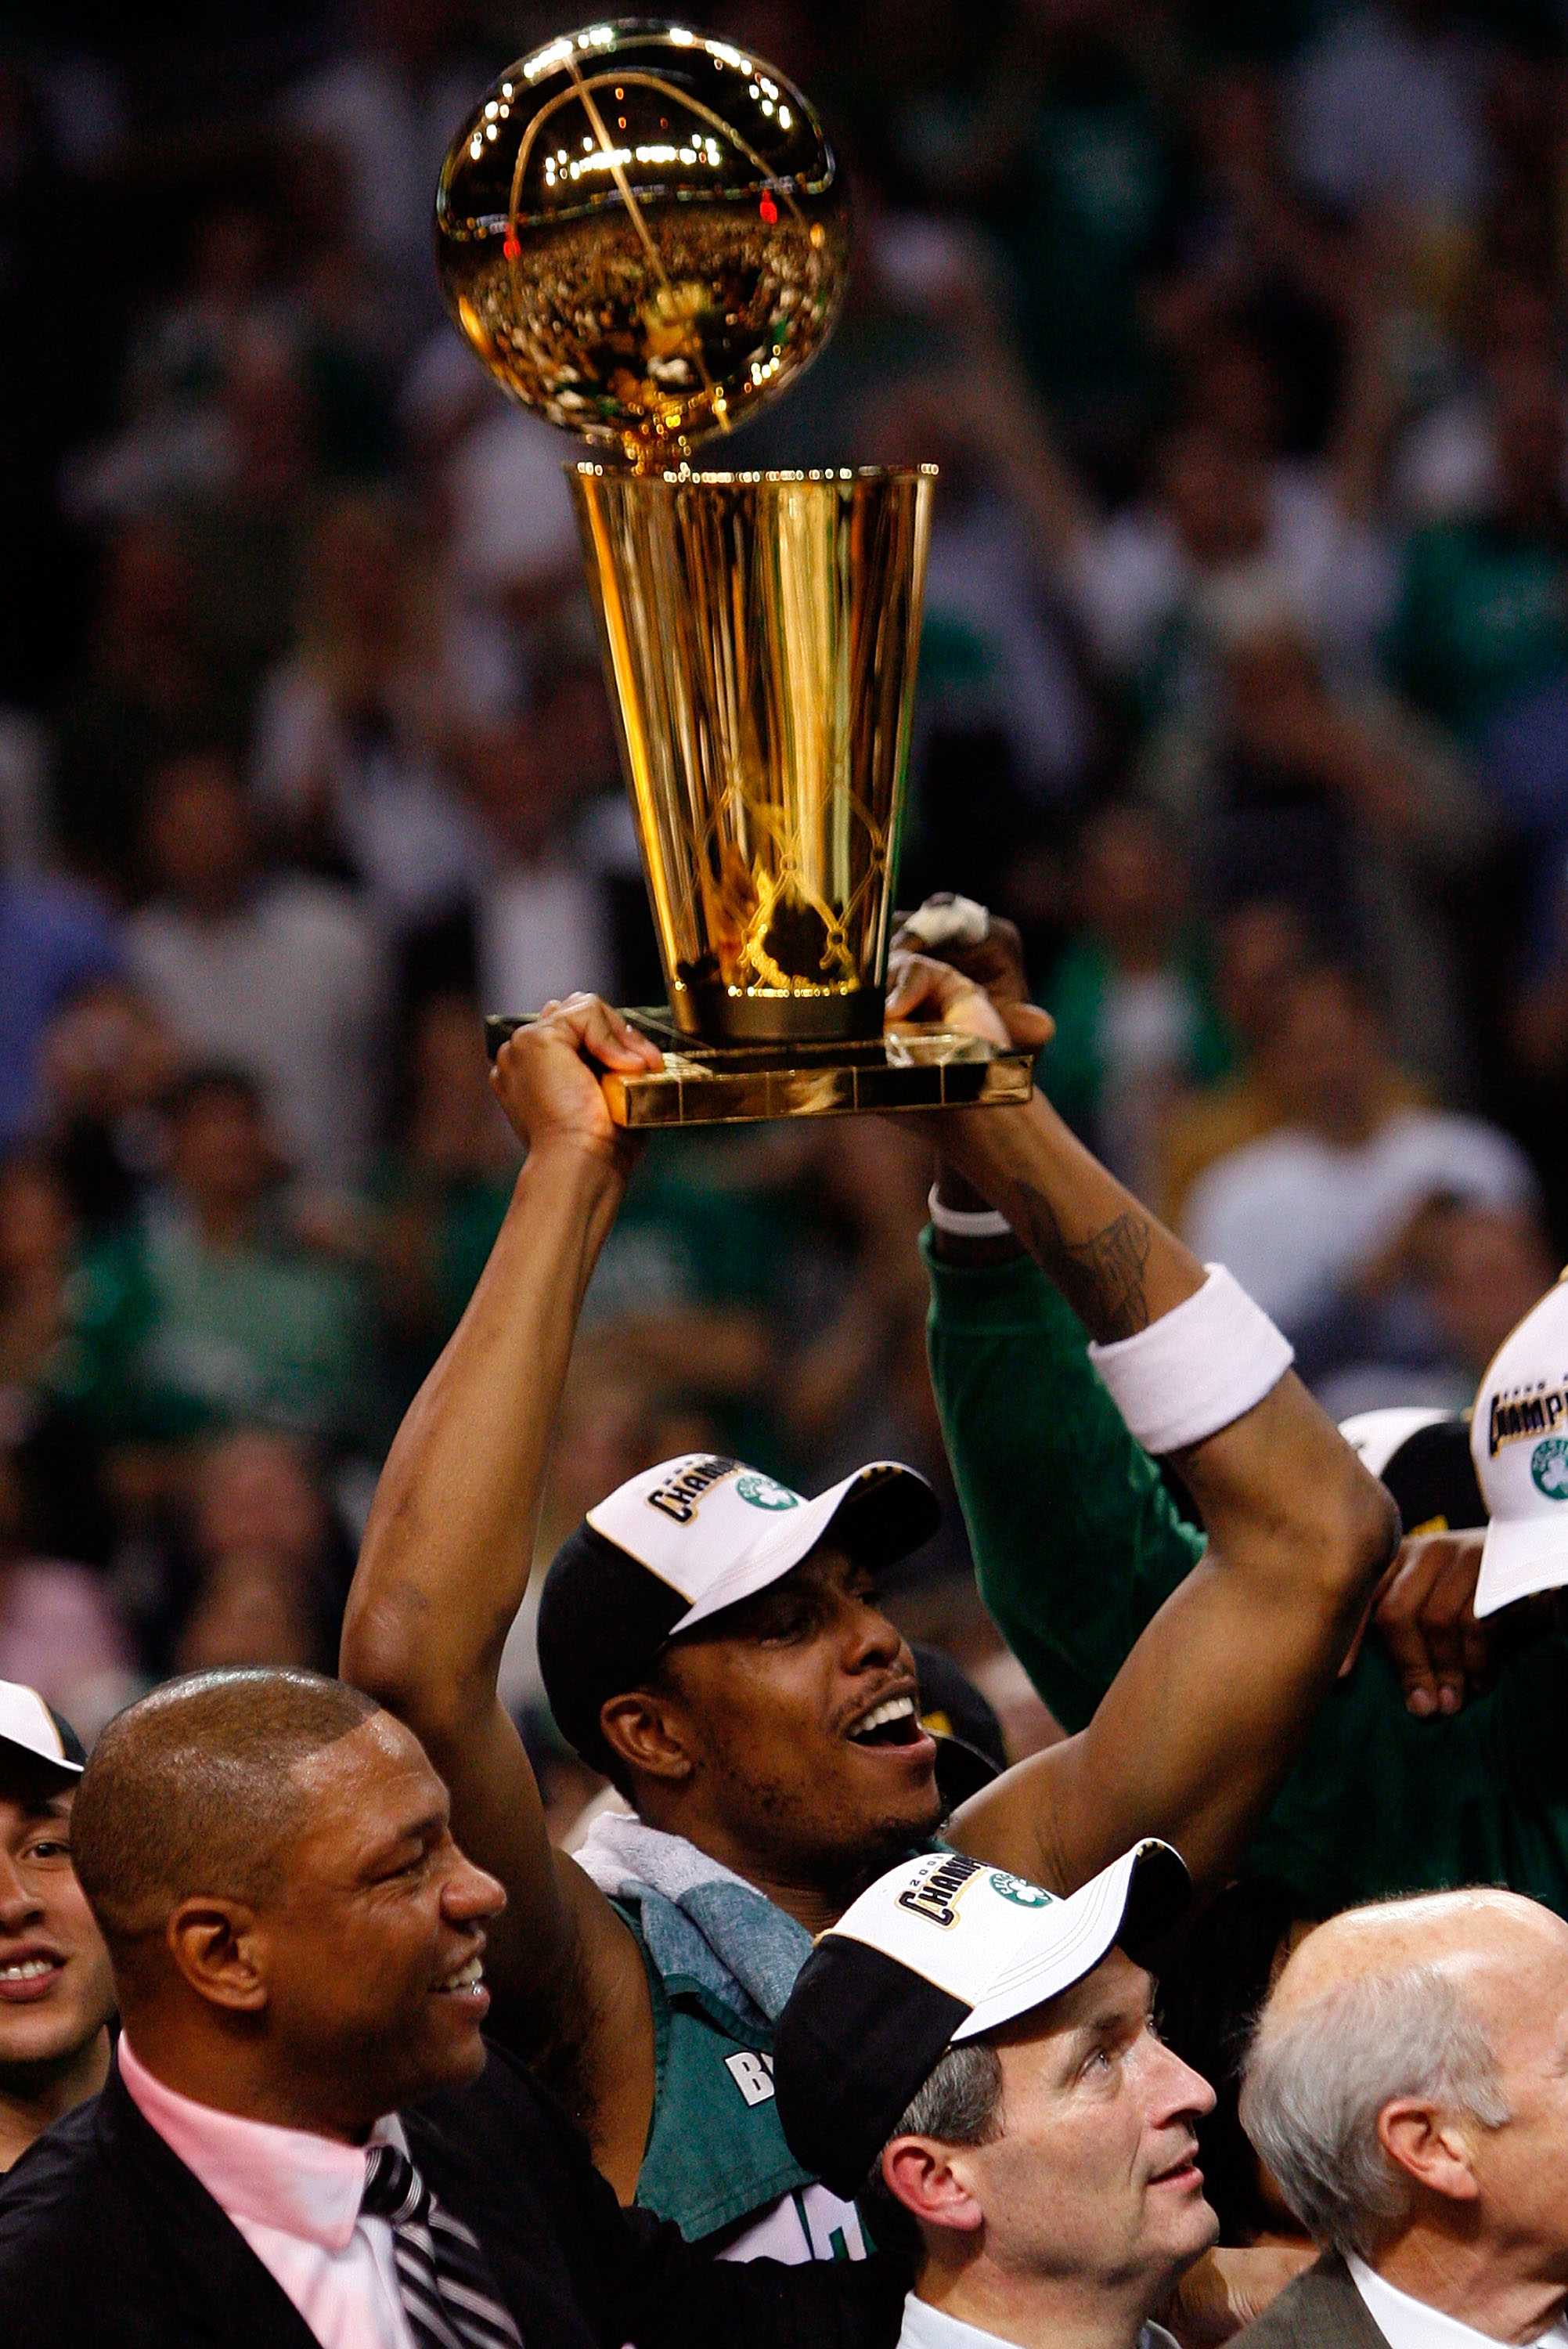 BOSTON - JUNE 17:  Paul Pierce #34 of the Boston Celtics holds up the Larry O'Brien trophy after Game Six of the 2008 NBA Finals against the Los Angeles Lakers on June 17, 2008 at TD Banknorth Garden in Boston, Massachusetts. The Celtics defeated the Lake